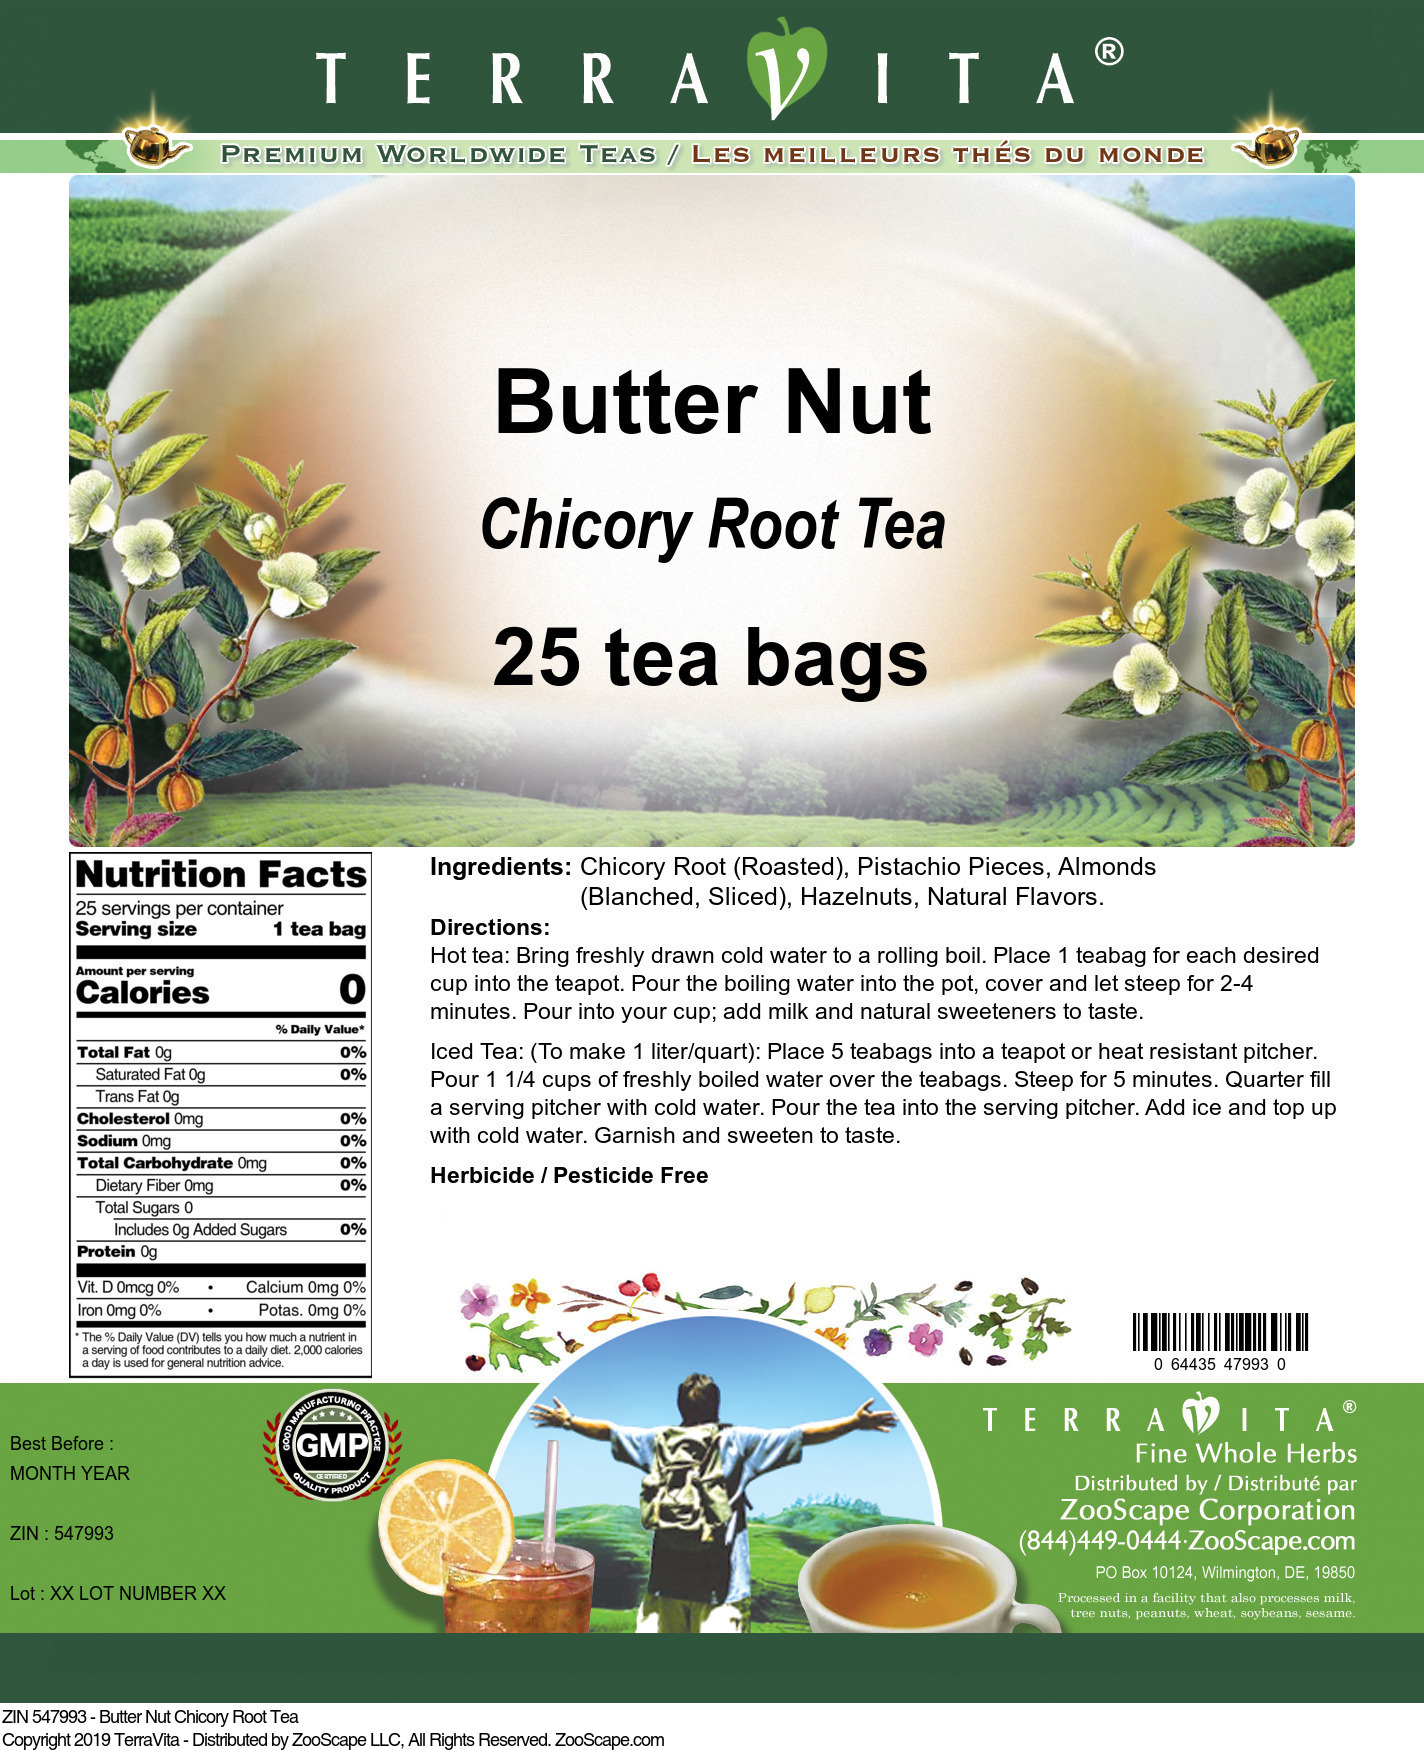 Butter Nut Chicory Root